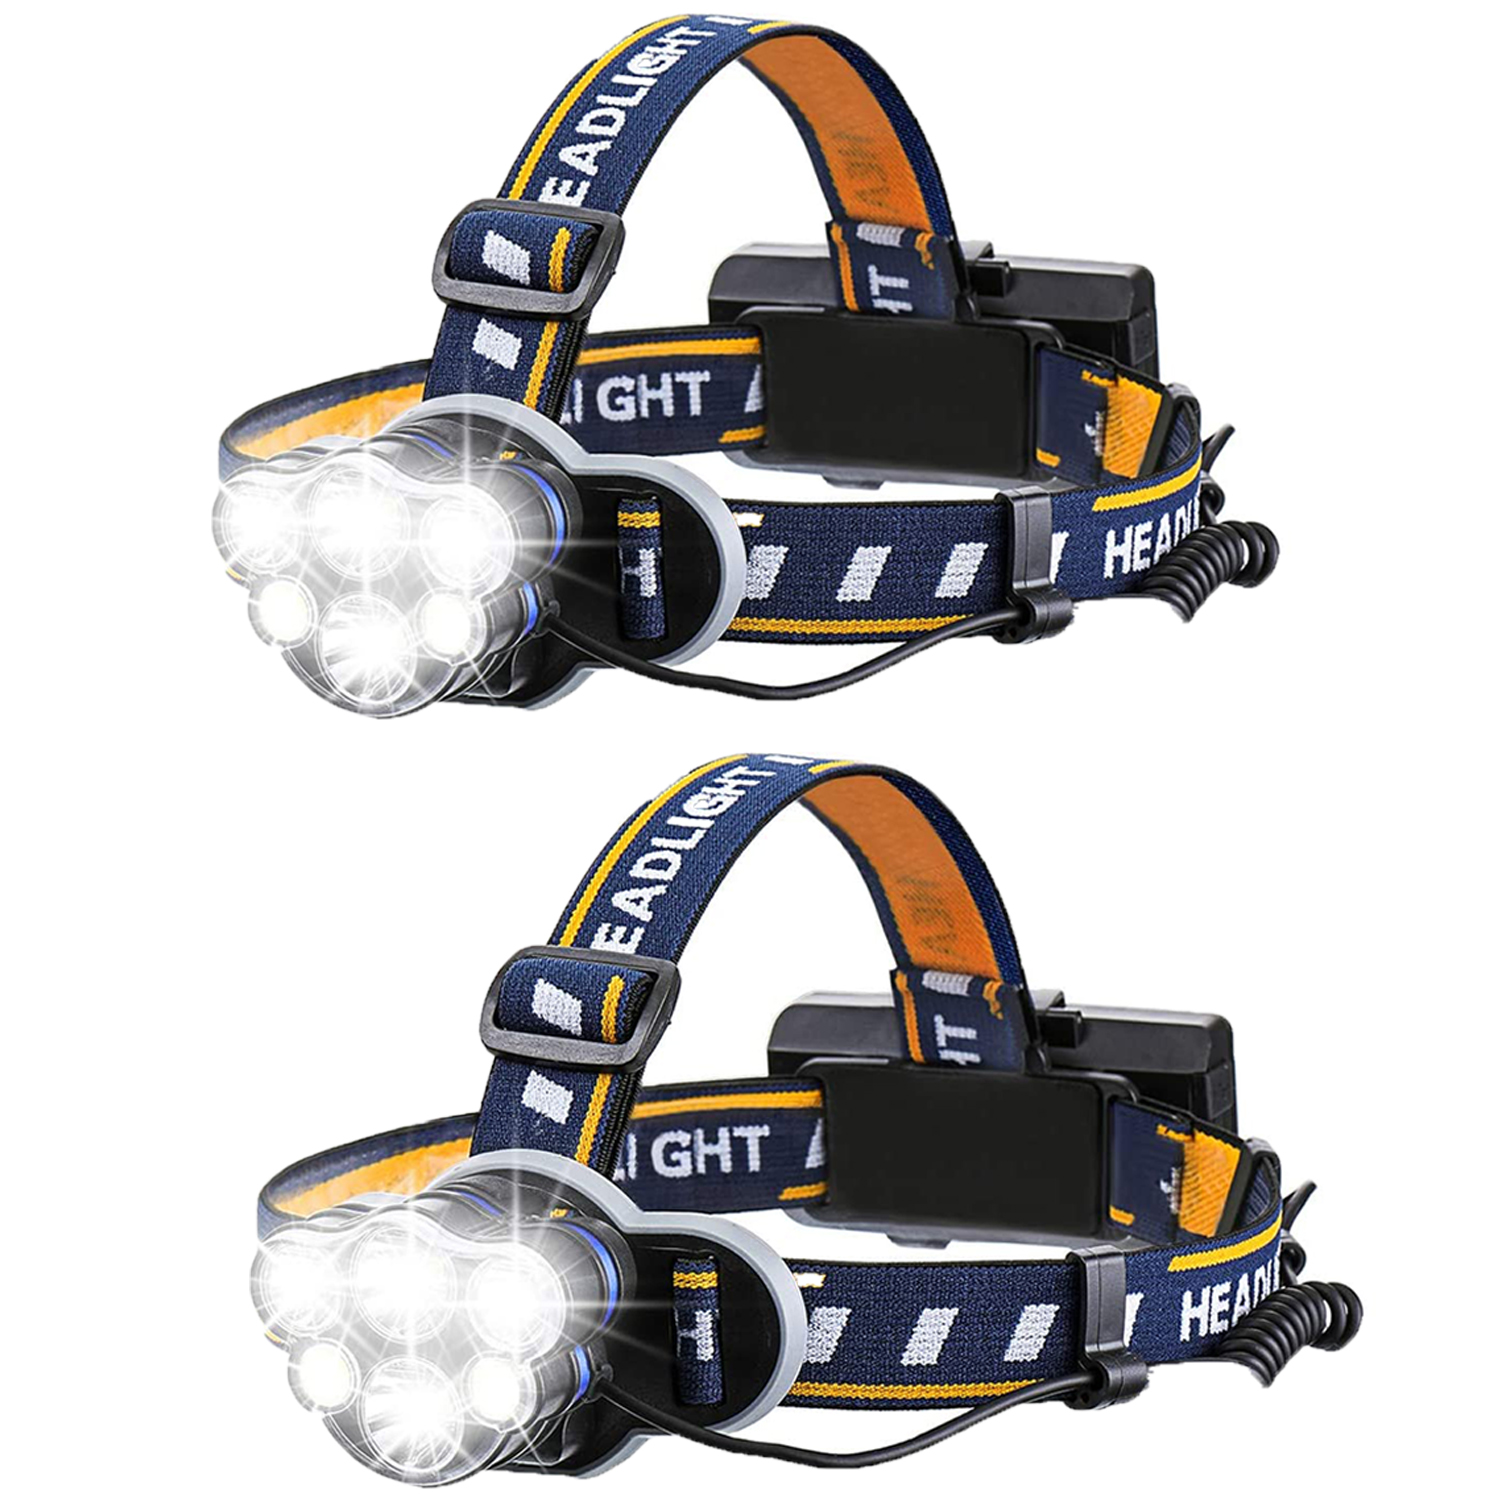 USB Rechargeable Headlamp Flashlight Hands Free Head Band Outdoor Lamp LED b